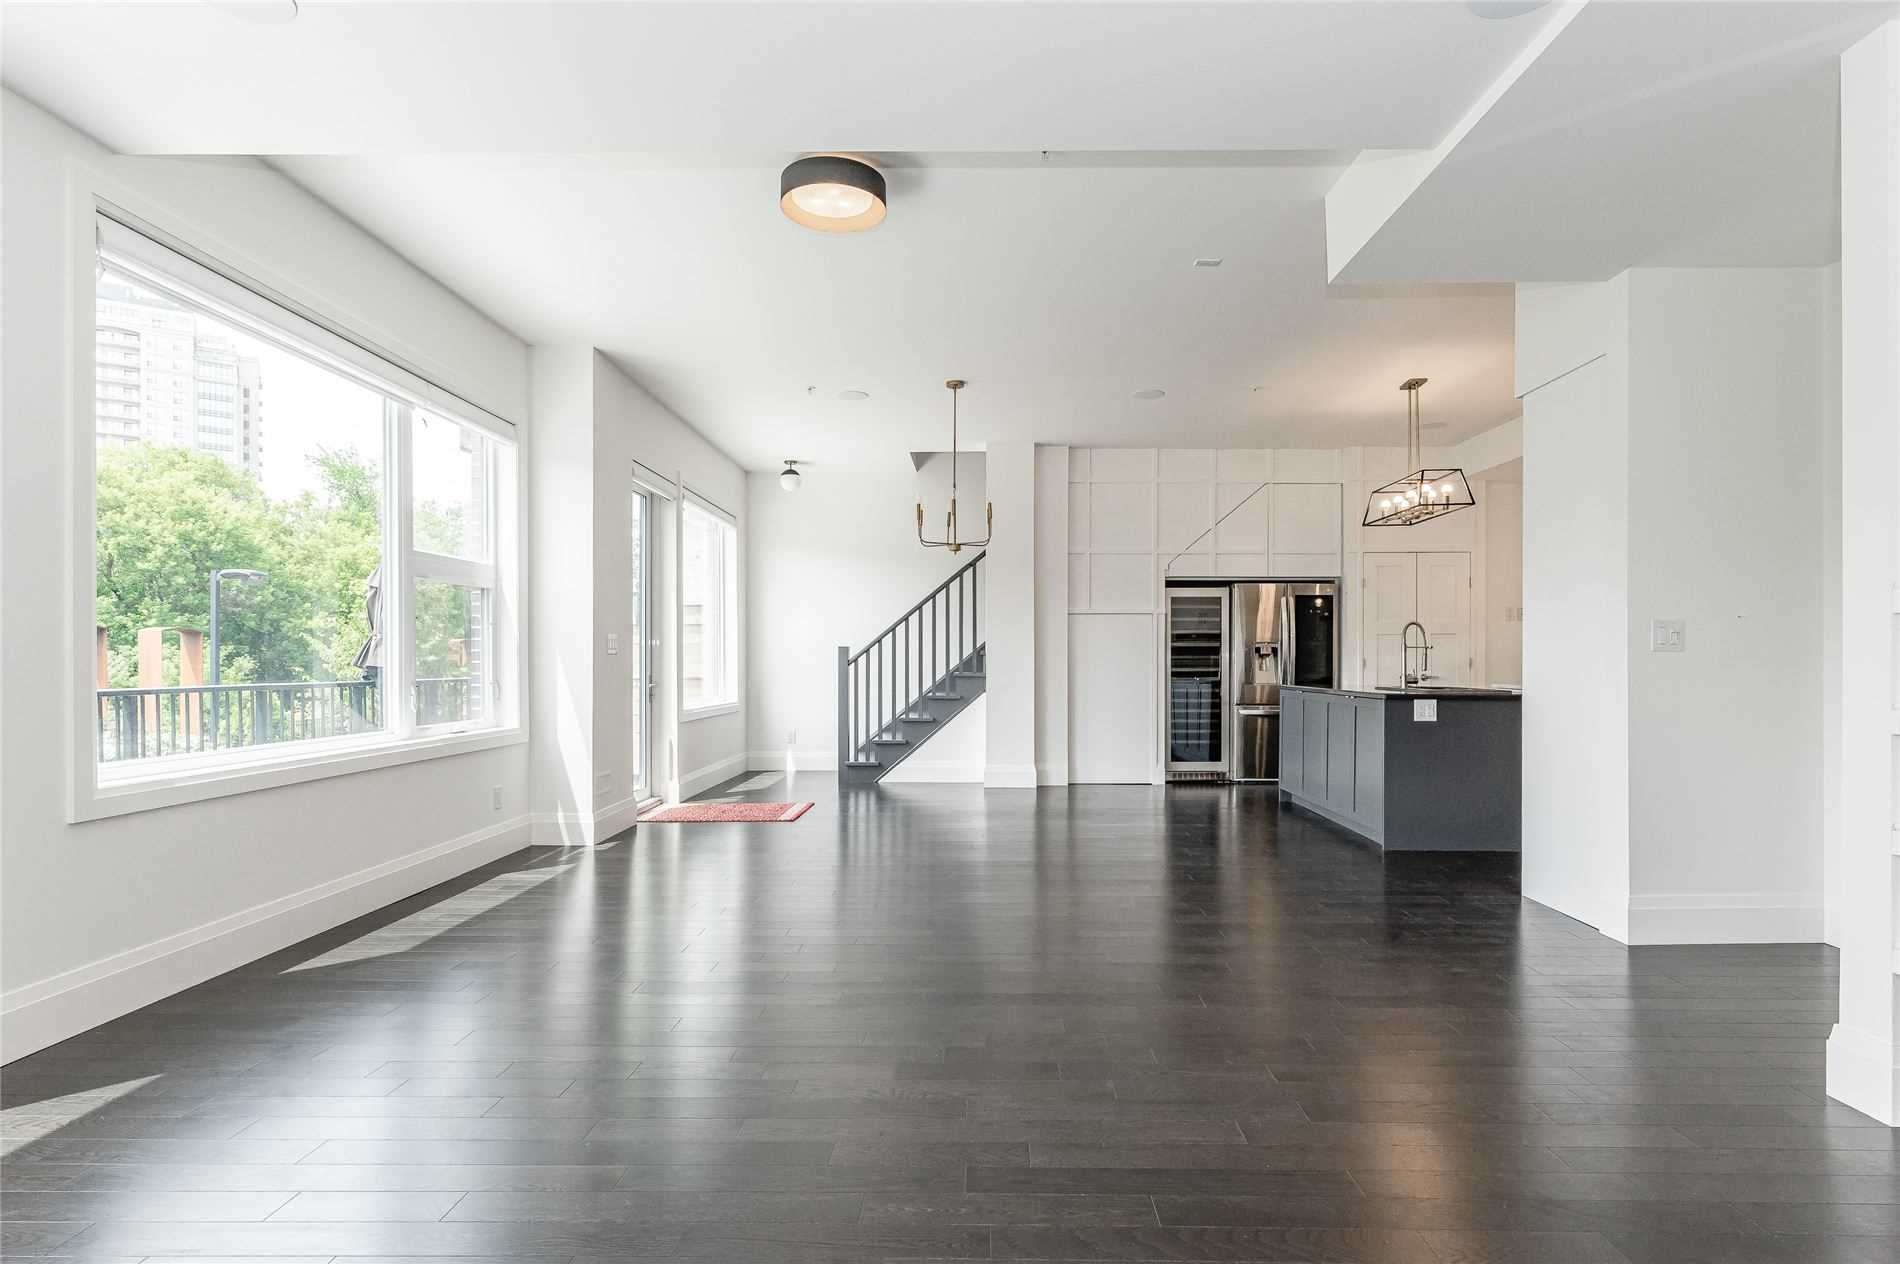 Condo Apt For Sale In Guelph , 3 Bedrooms Bedrooms, ,4 BathroomsBathrooms,Condo Apt,For Sale,Rl-6,Arthur